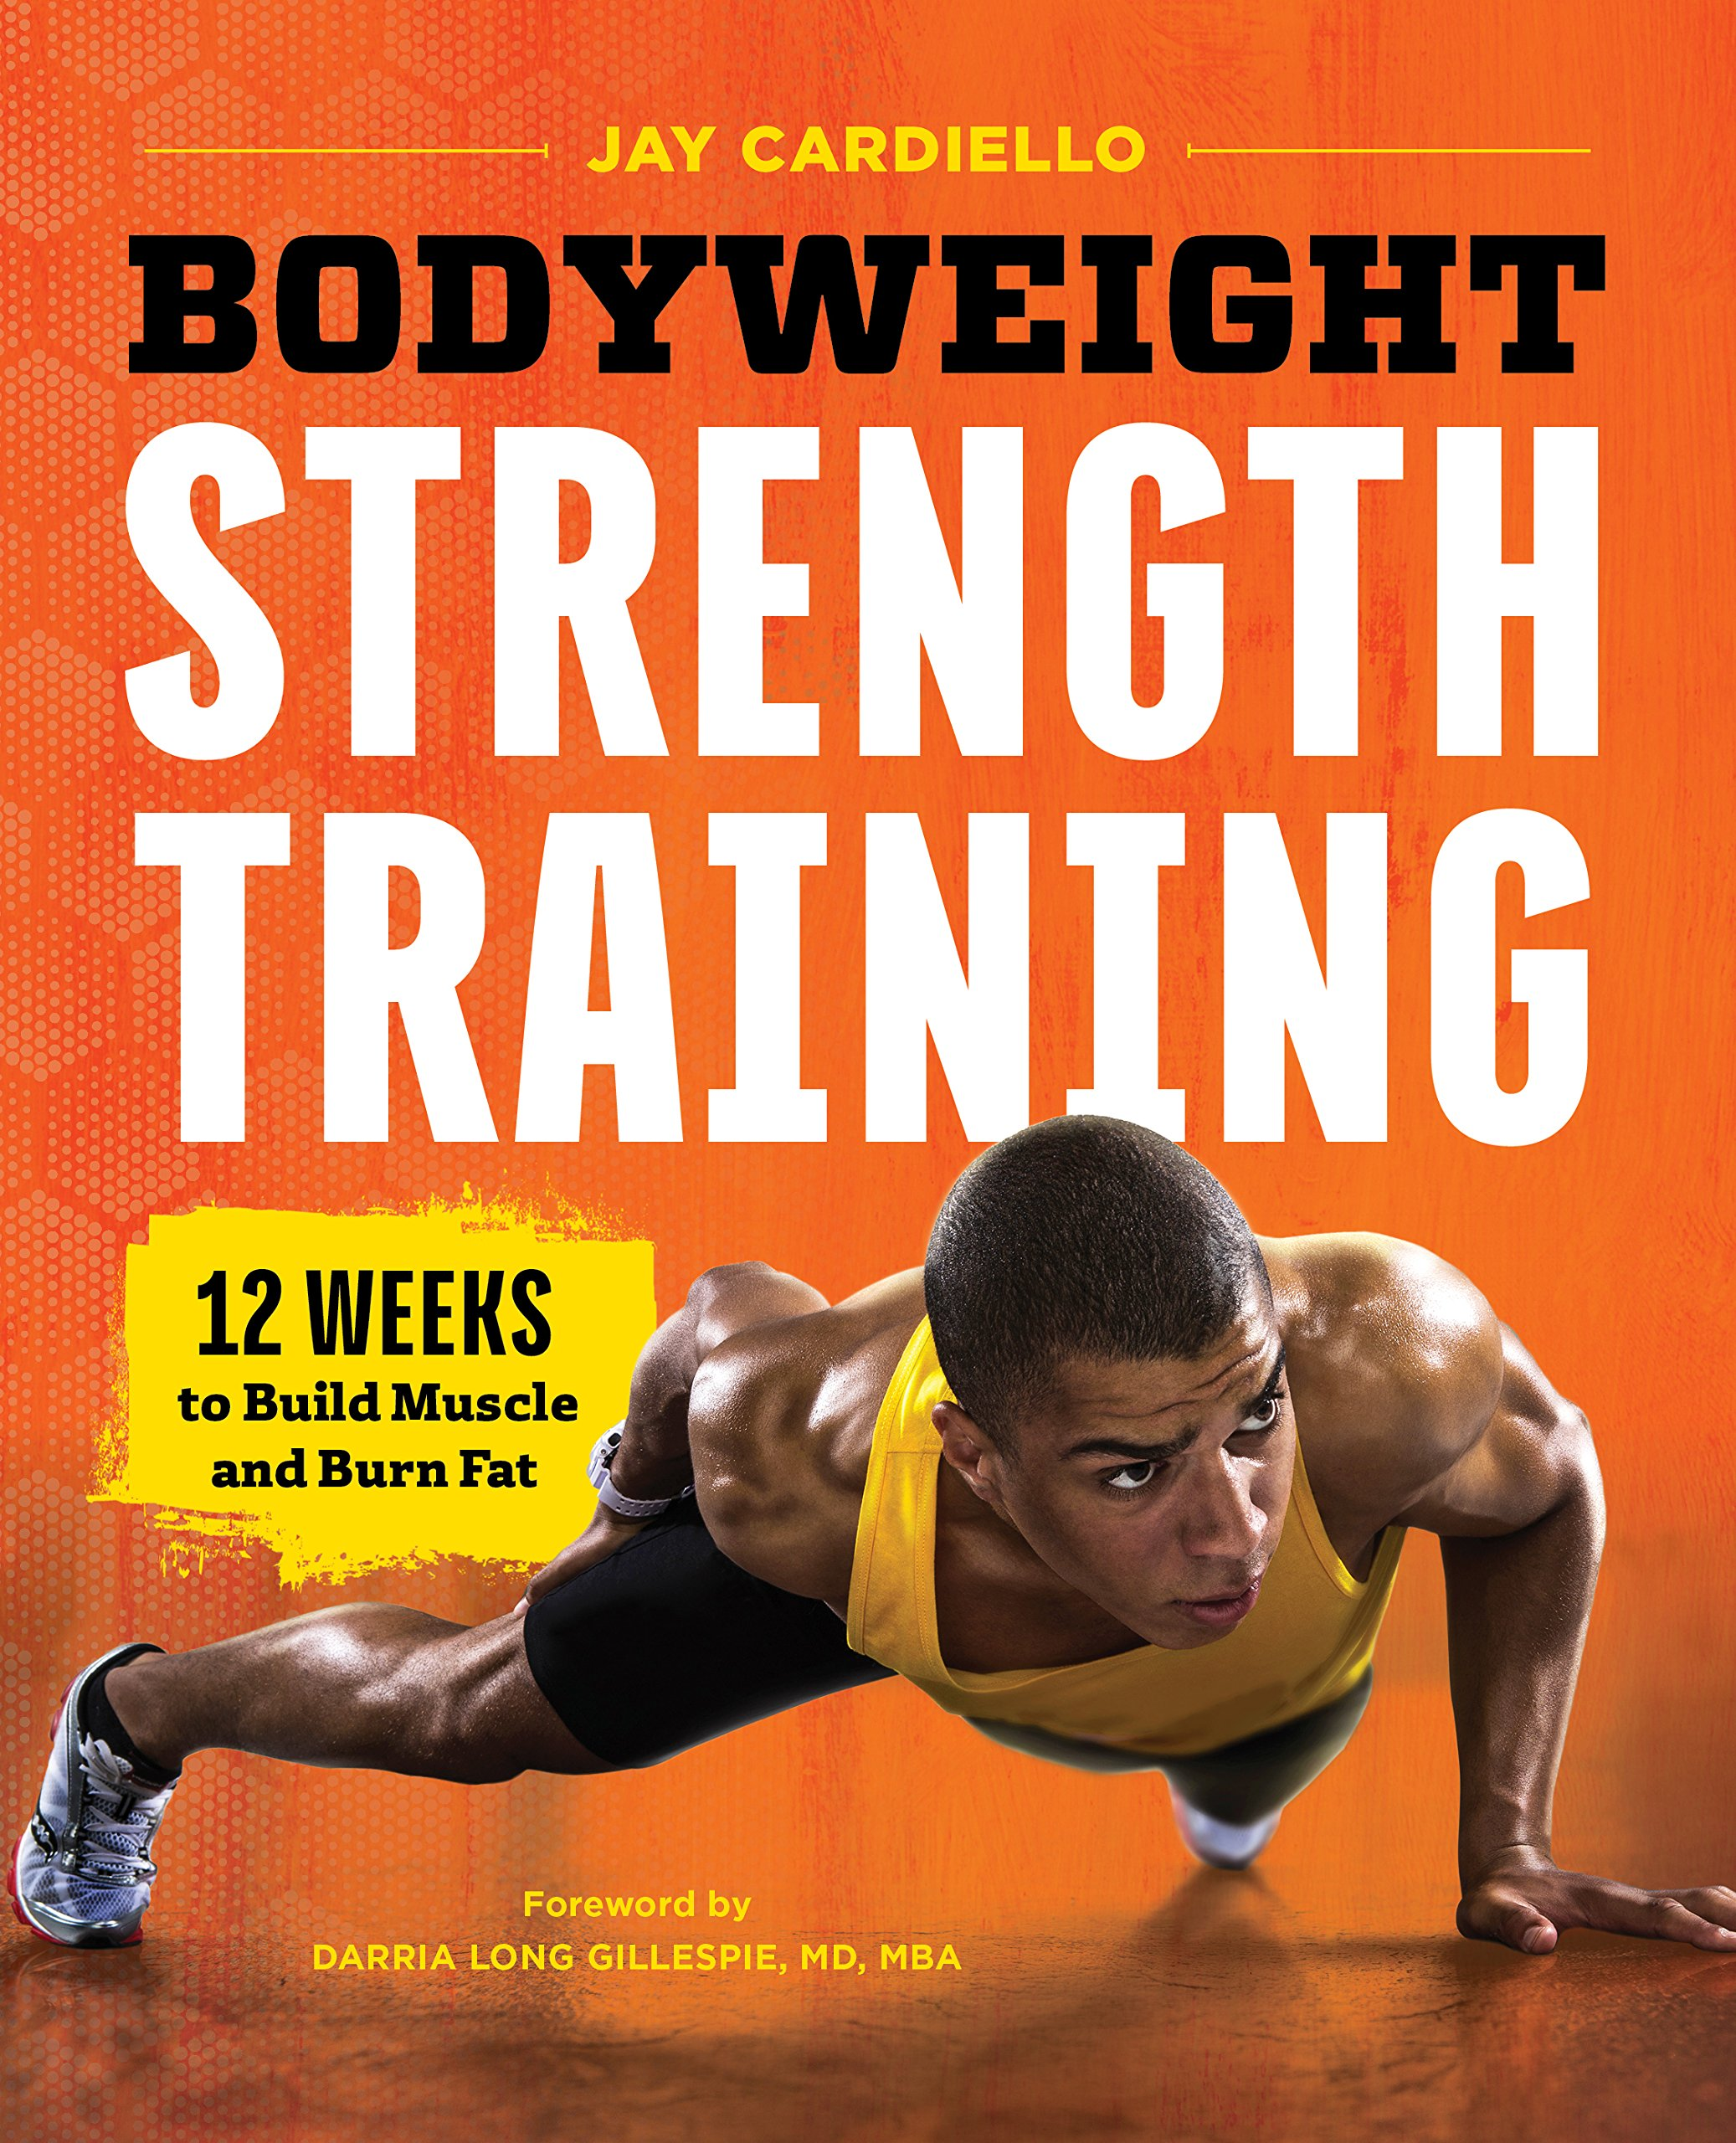 Bodyweight Strength Training Weeks Muscle product image